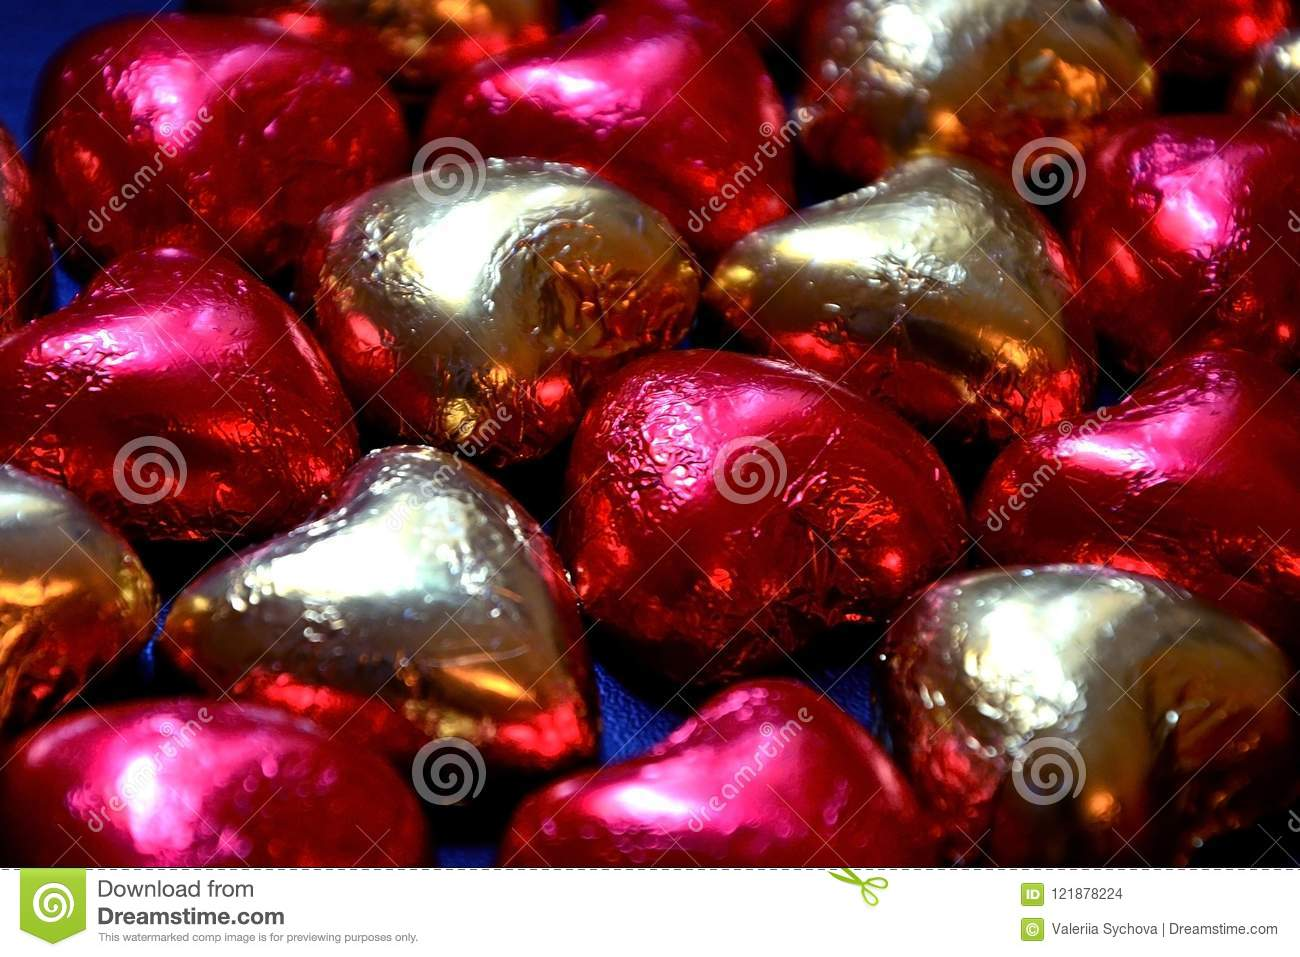 Background of chocolate candies in the form of hearts close-up. Red and gold packaging made of shiny foil.